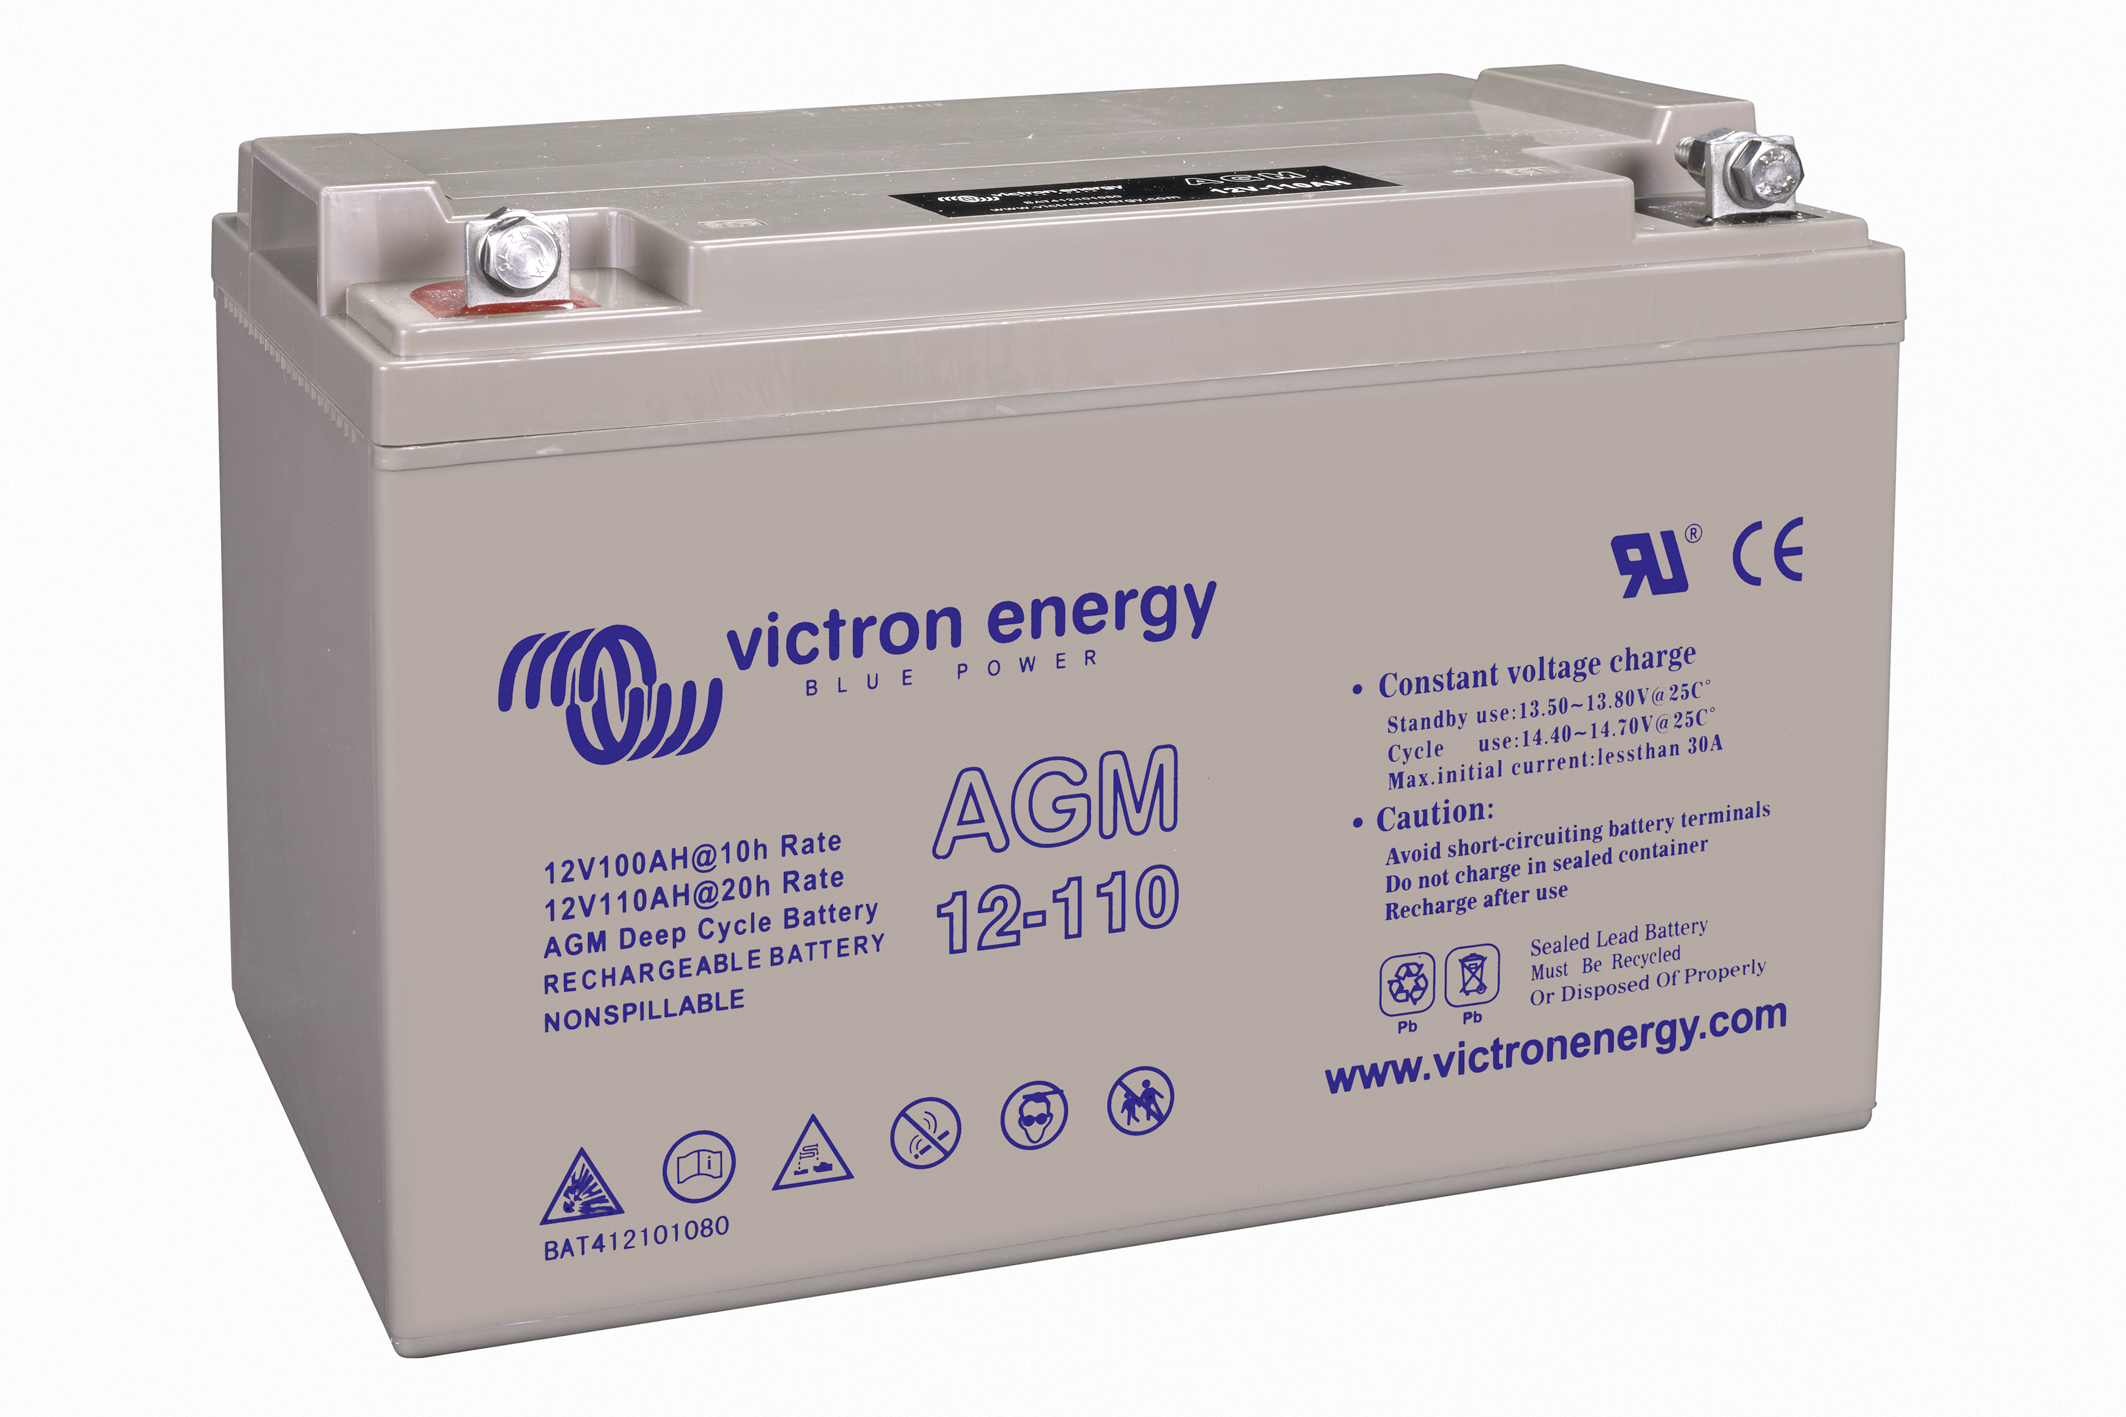 Multiplus Victron Energy Wiring Diagram Together With Pure Sine Wave Inverter Circuit Download